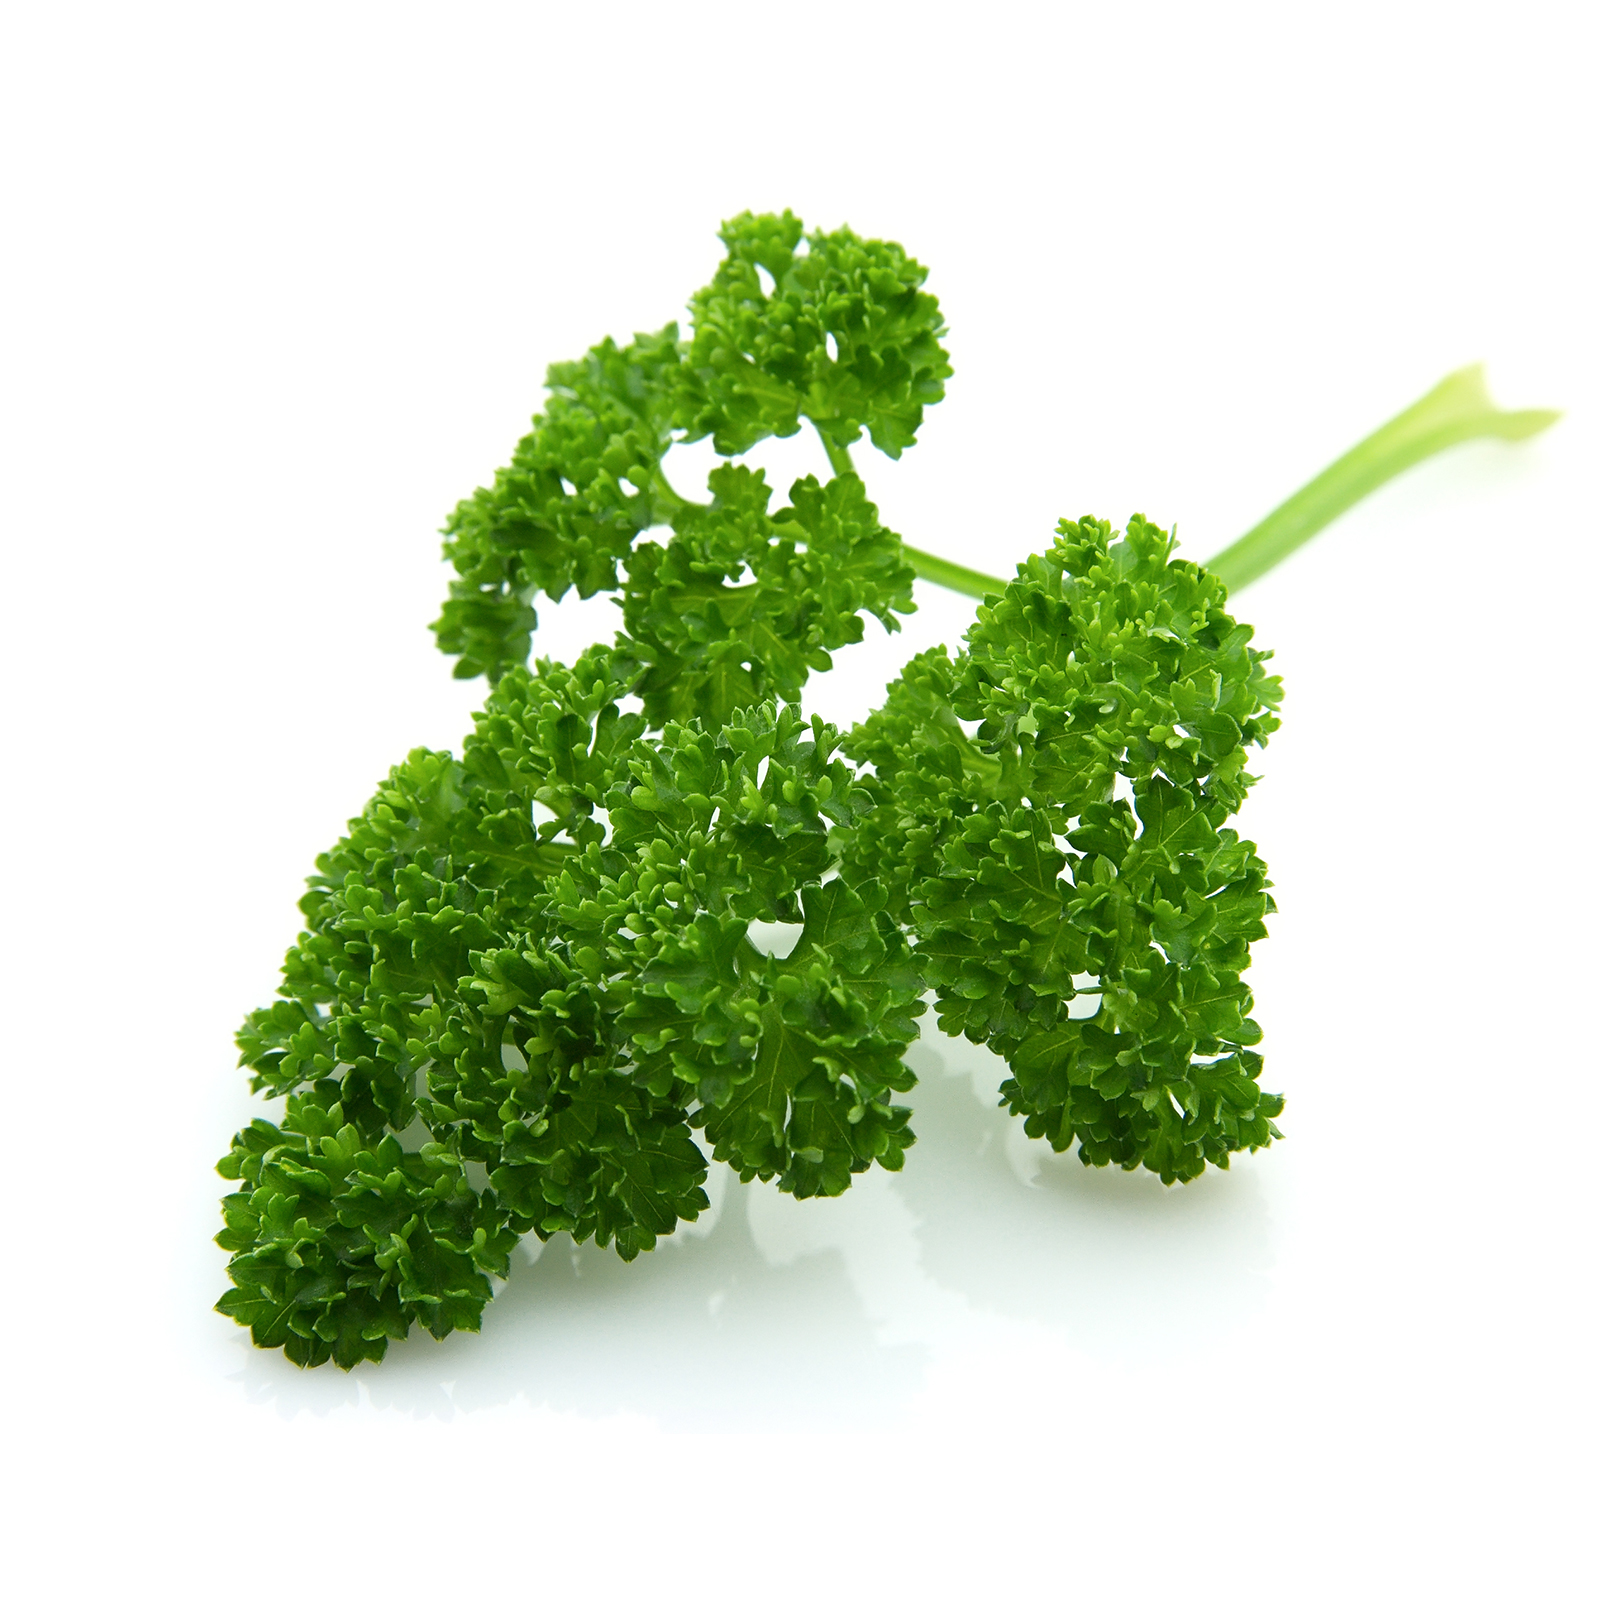 Parsley – 5 A DAY CSA